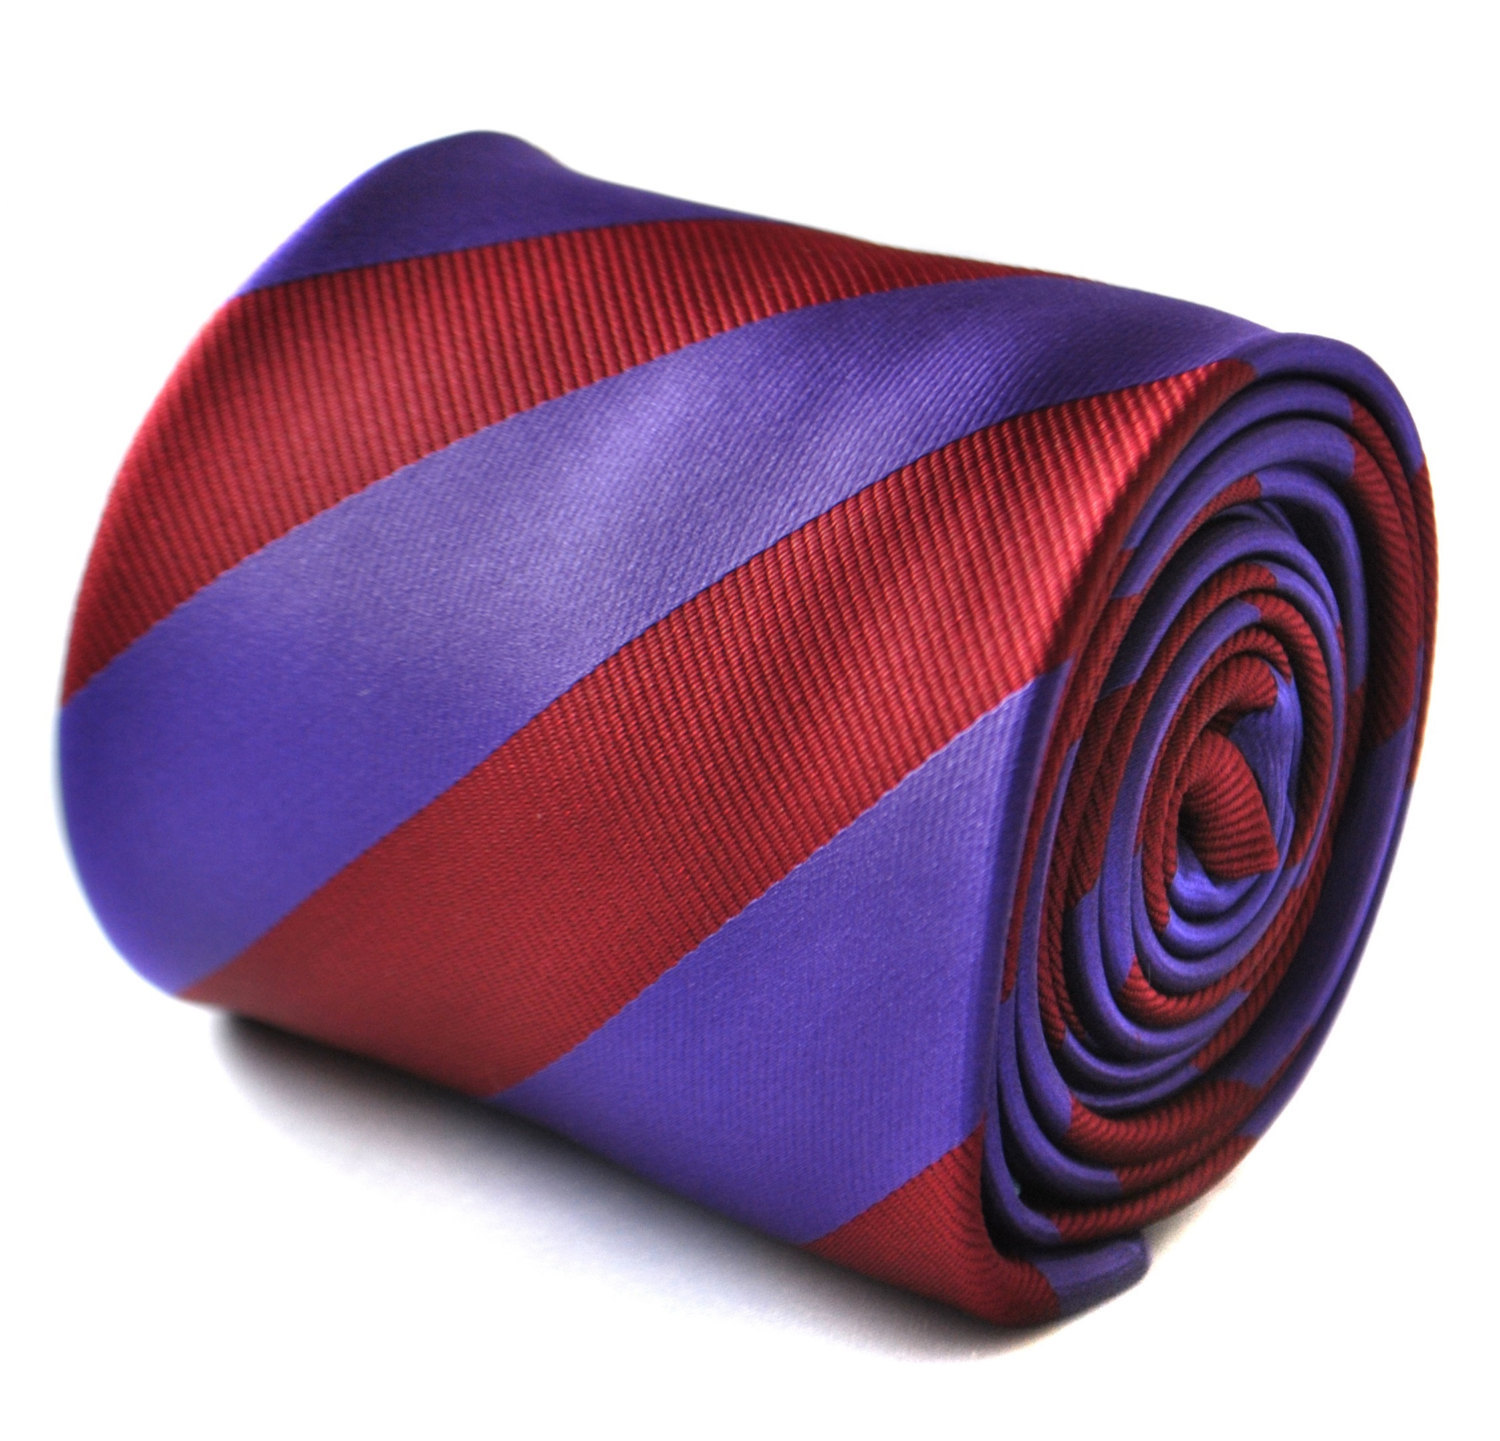 Maroon red and cadbury purple barber striped tie with signature floral design to